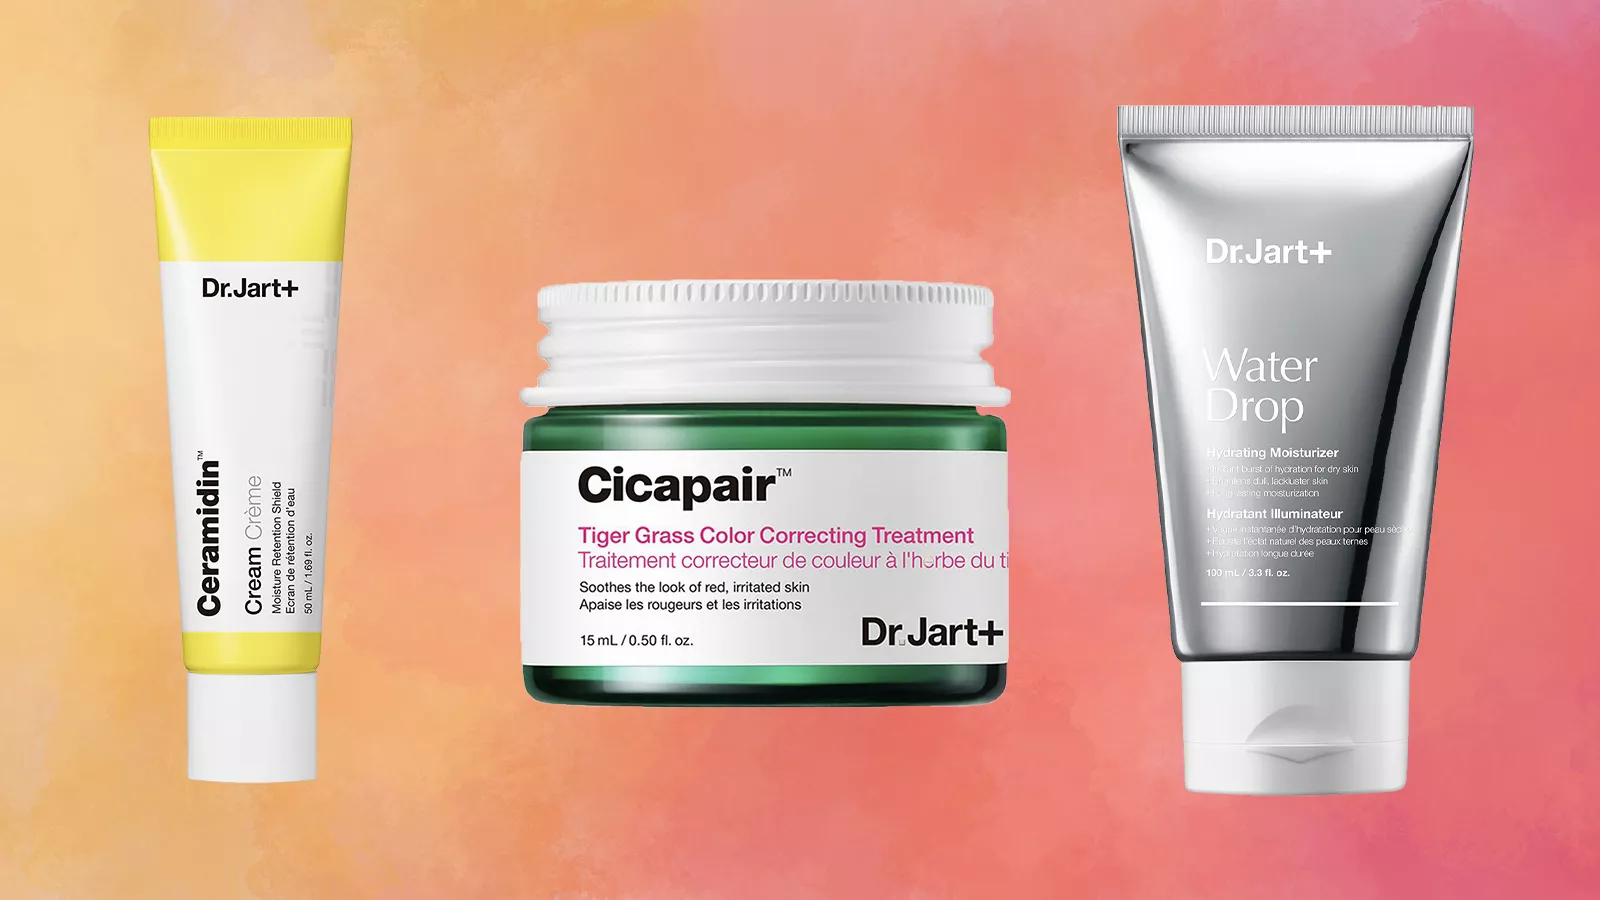 Dr Jart: The Korean beauty range with a cult following across the world